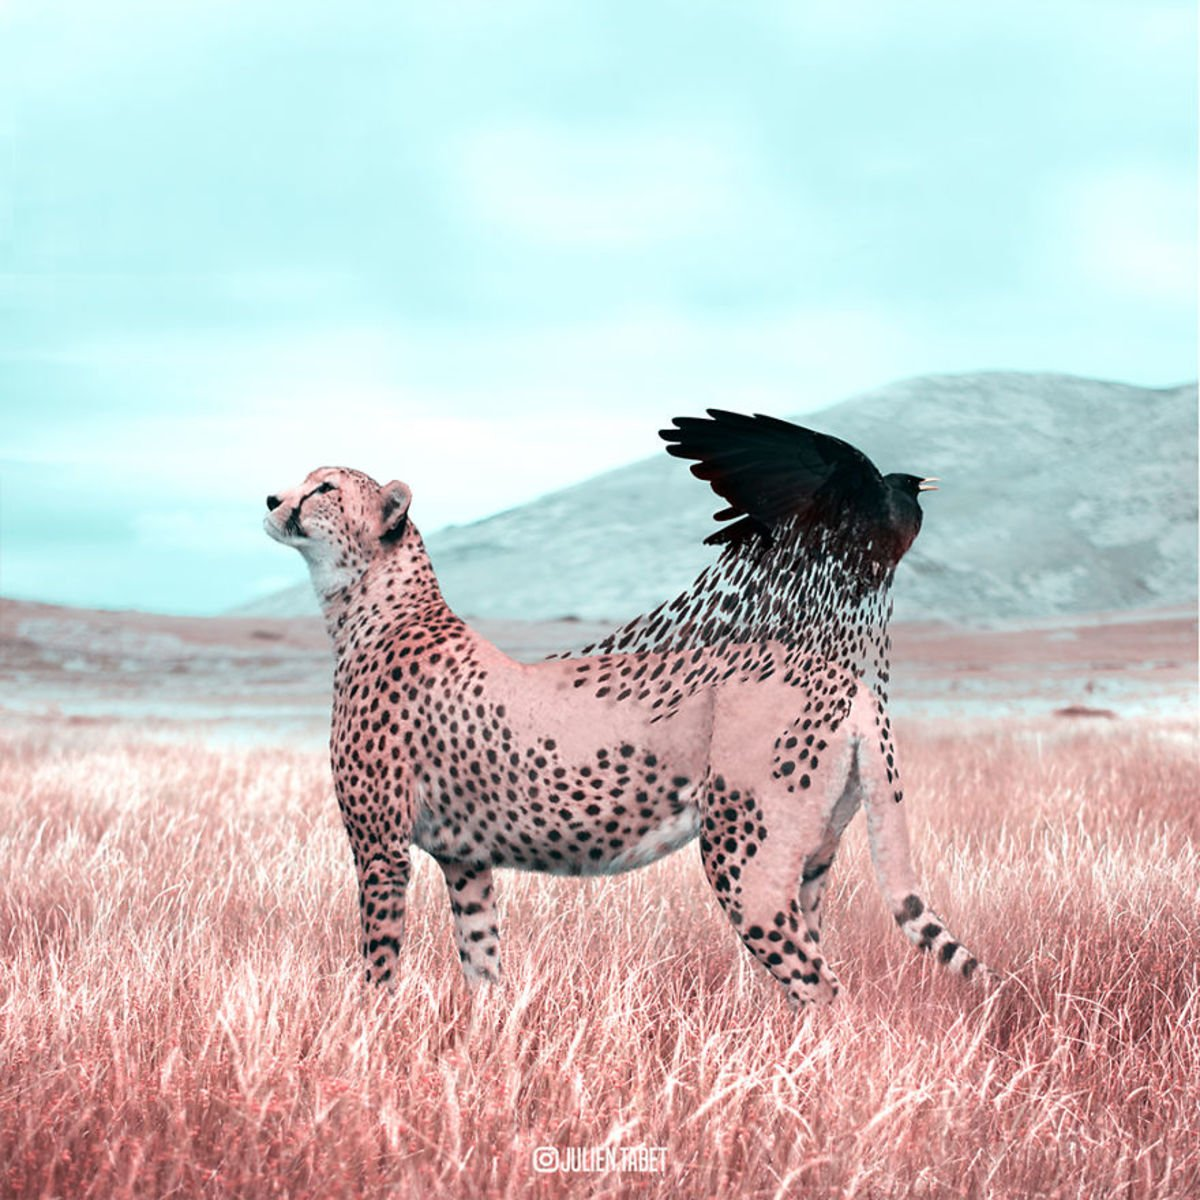 French Artist Creates The Most Surreal Animal Images Using Photoshop